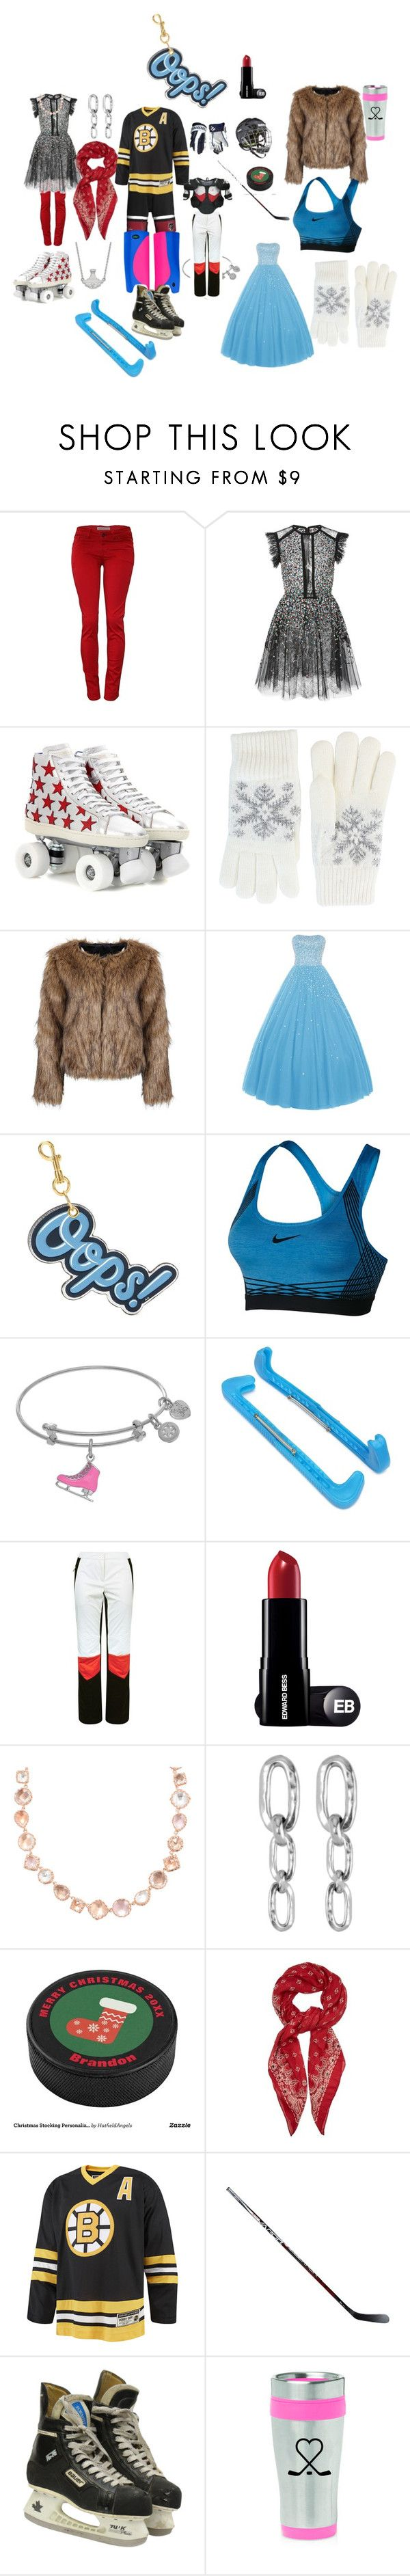 """""""GT ICE"""" by traceymarh on Polyvore featuring Elie Saab, Yves Saint Laurent, Fits, Anya Hindmarch, NIKE, Sportalm, Larkspur & Hawk, Uno de 50, Reebok and Koncept"""